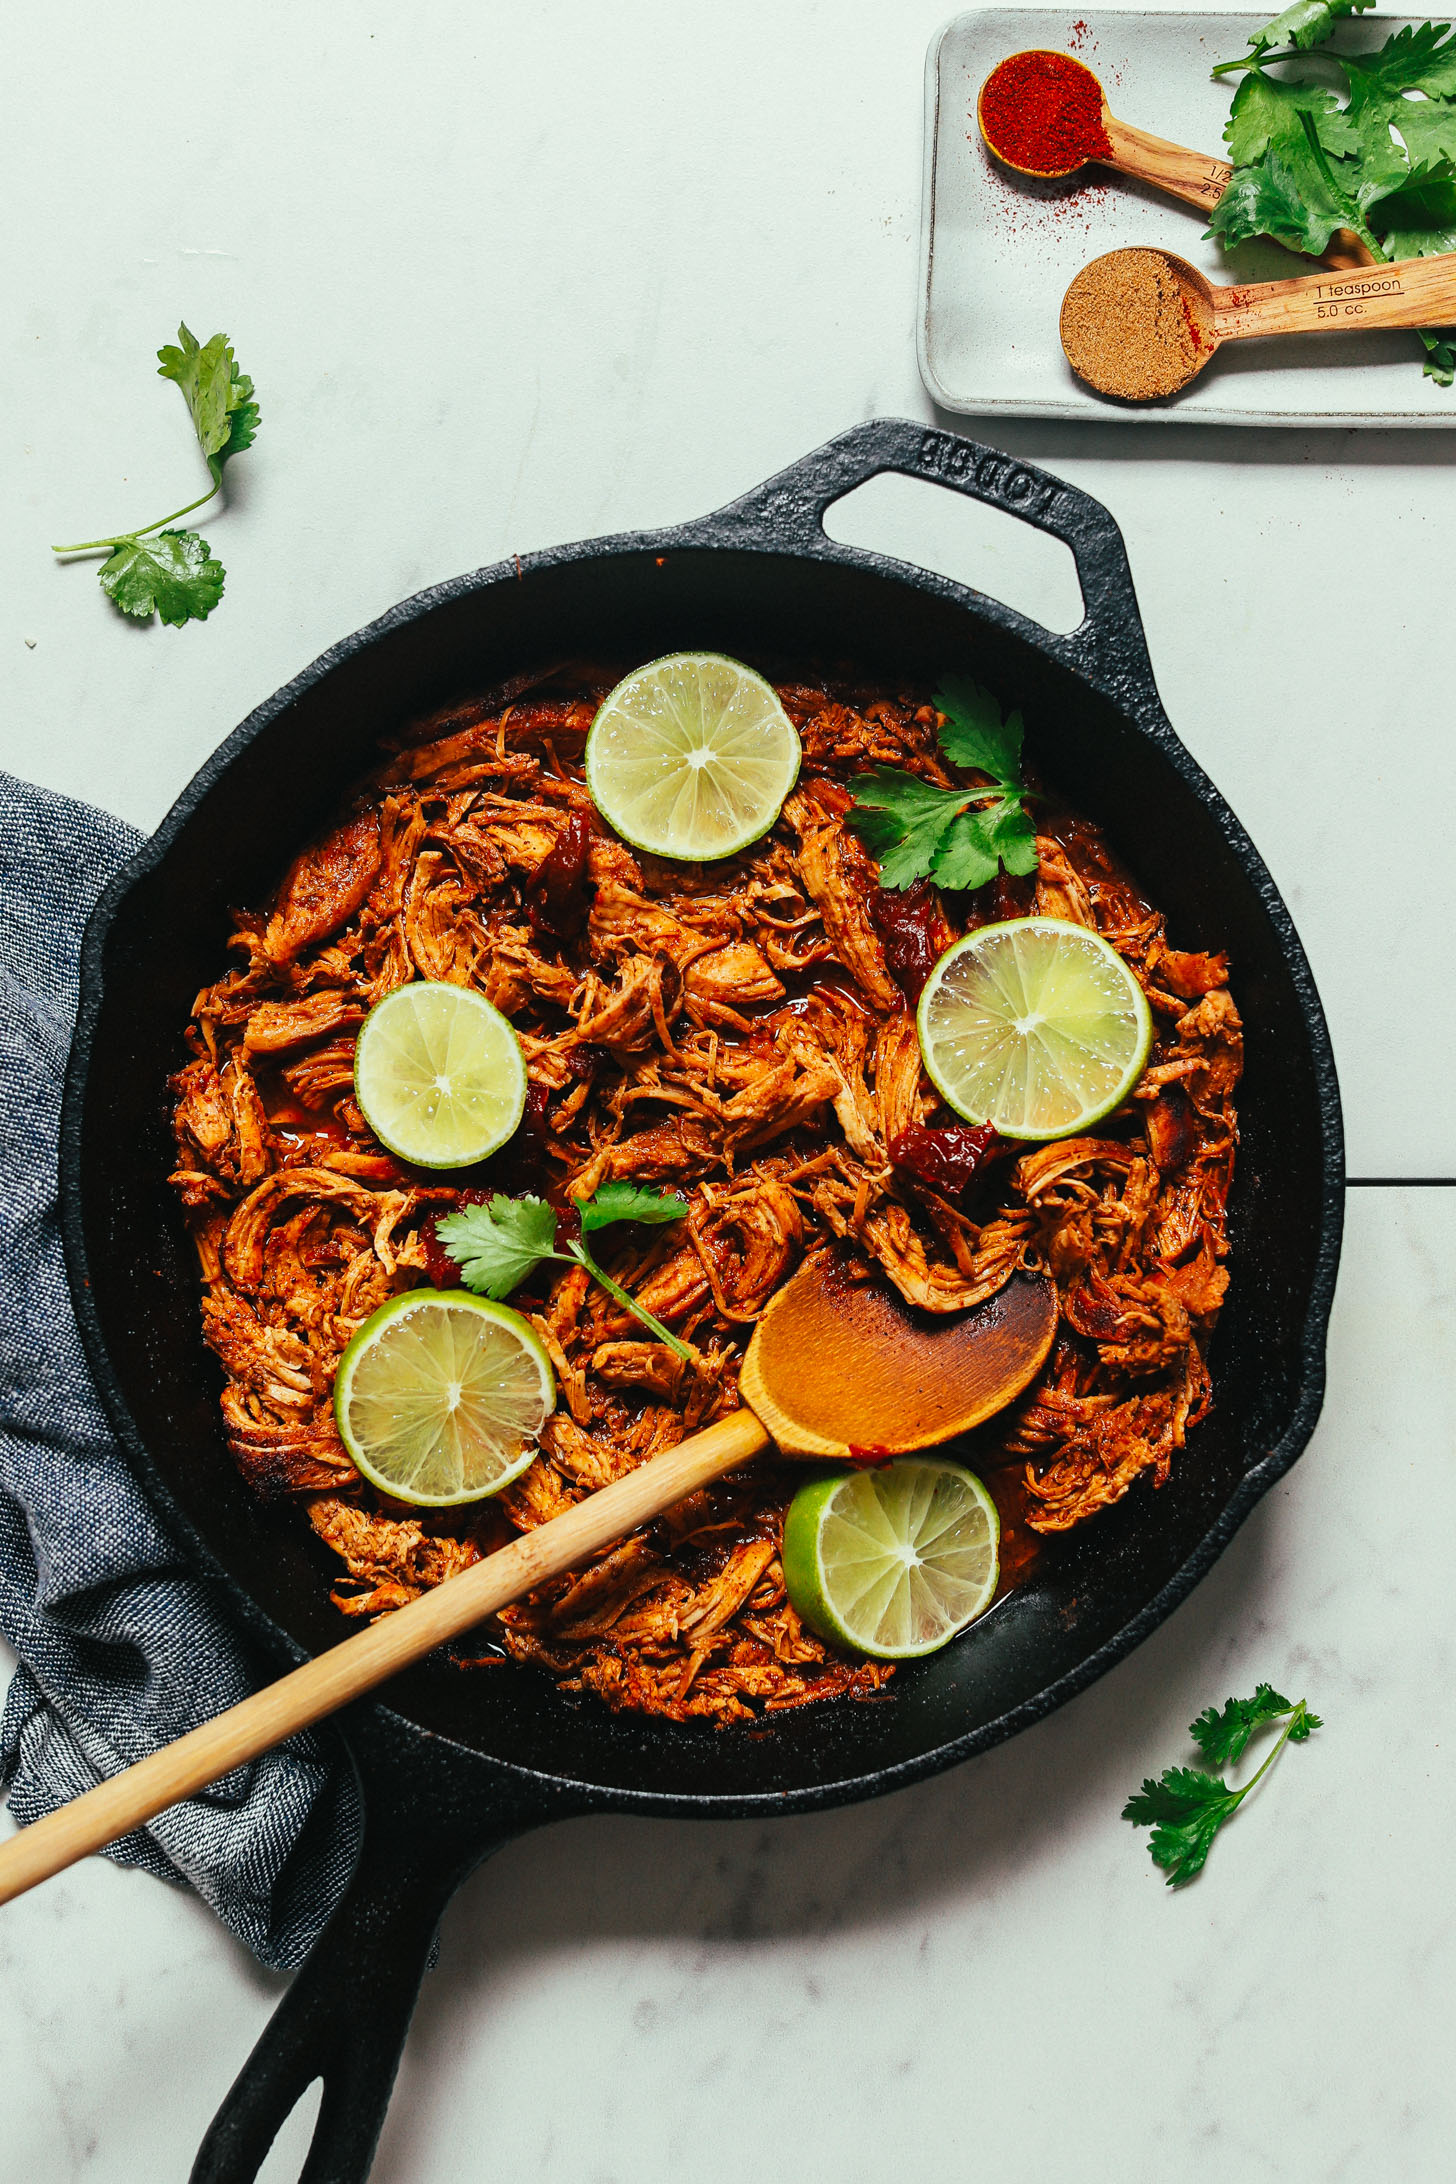 Wooden spoon in a skillet of Mexican Shredded Chicken made with chipotle peppers and lime